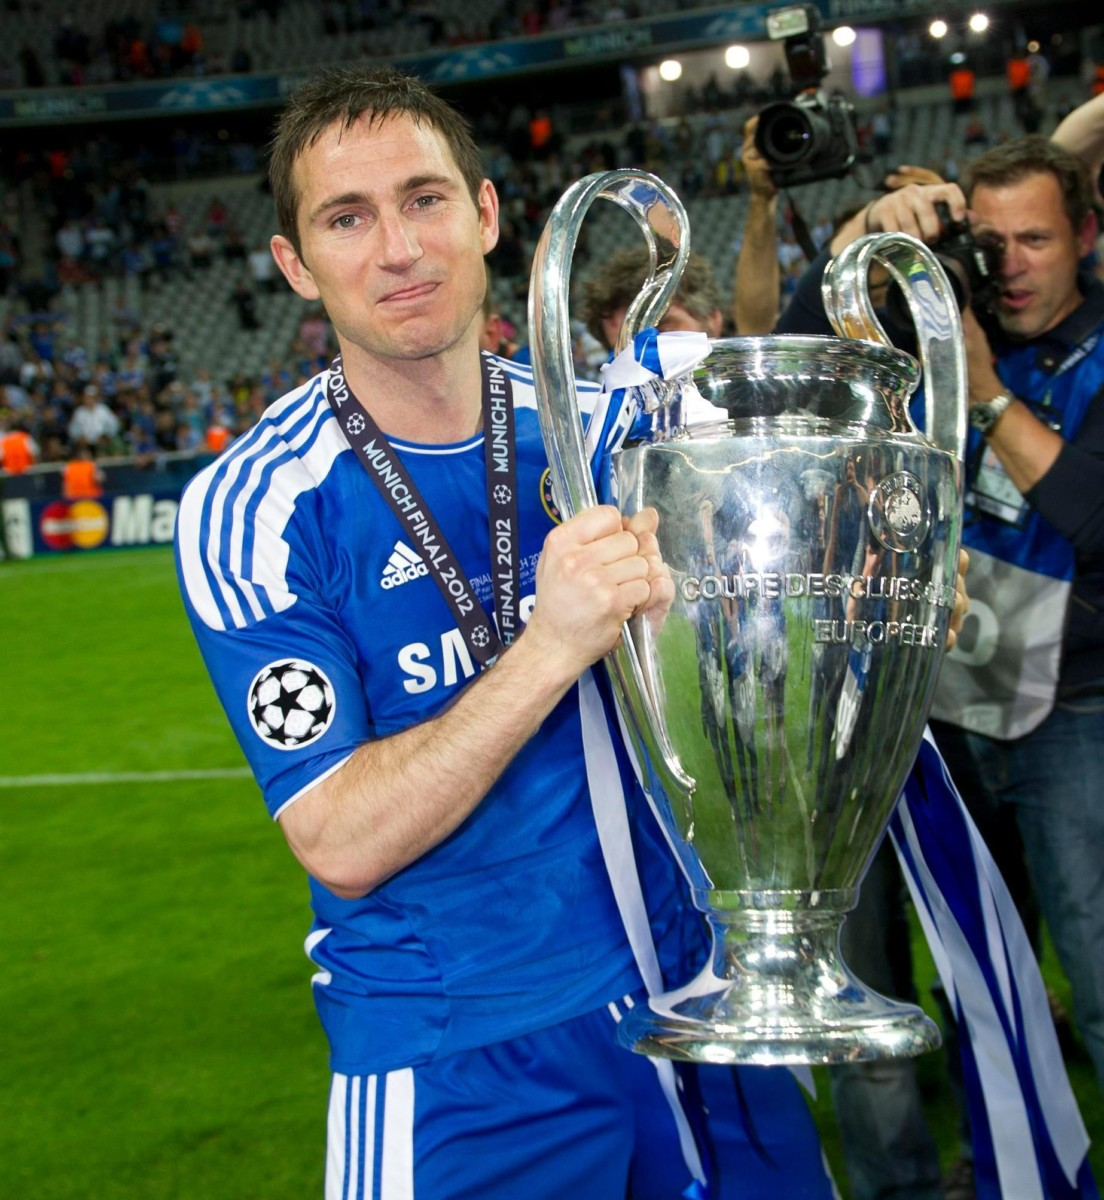 Chelsea icon Frank Lampard even got his hands on the Champions League